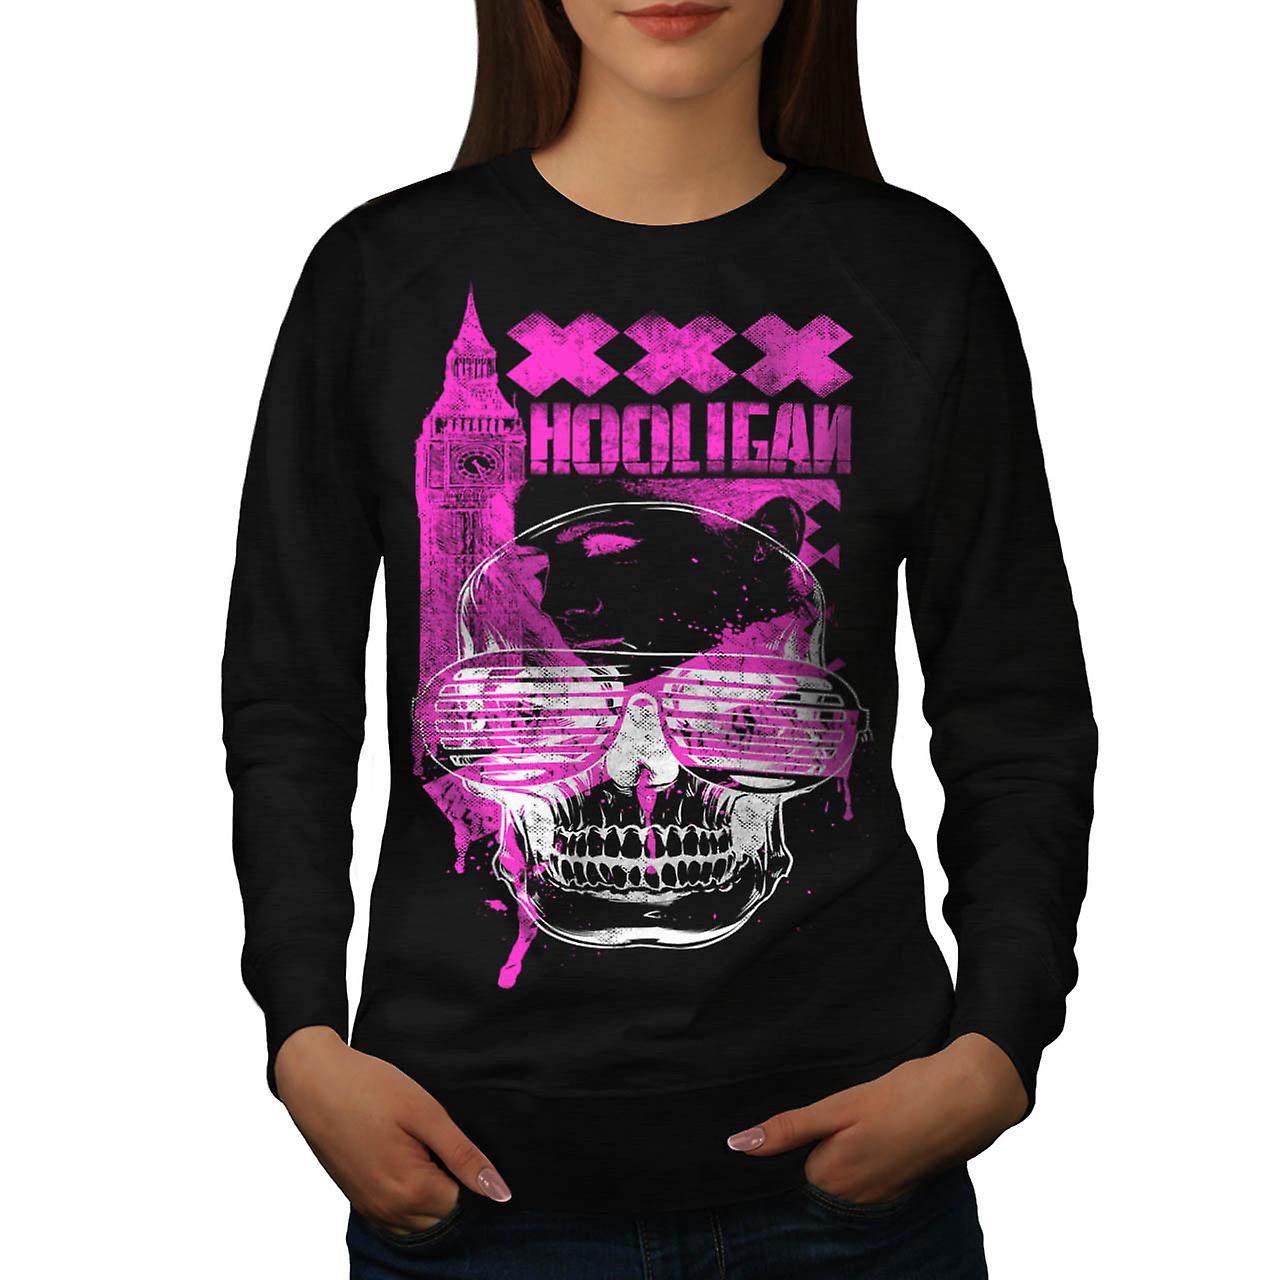 UK Hooligan Toten Gangster Frauen Schwarzes Sweatshirt | Wellcoda